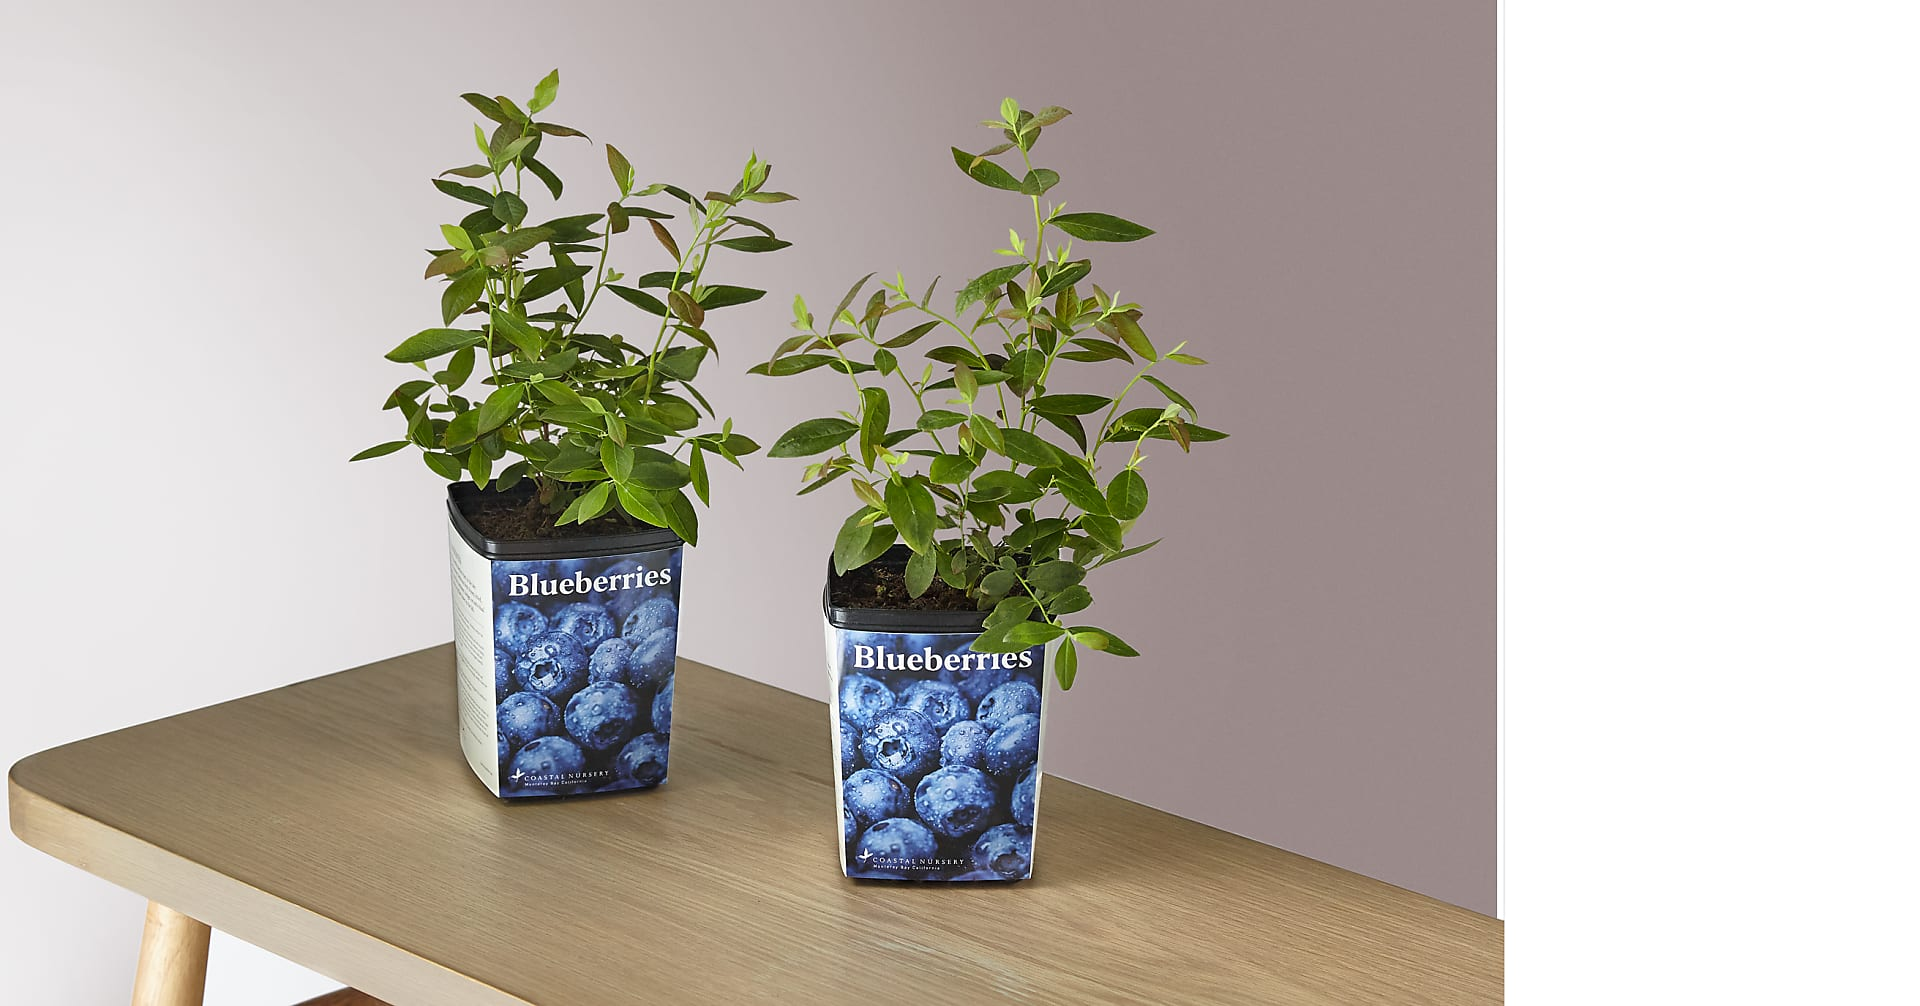 Blueberry Garden Kit - Image 1 Of 4